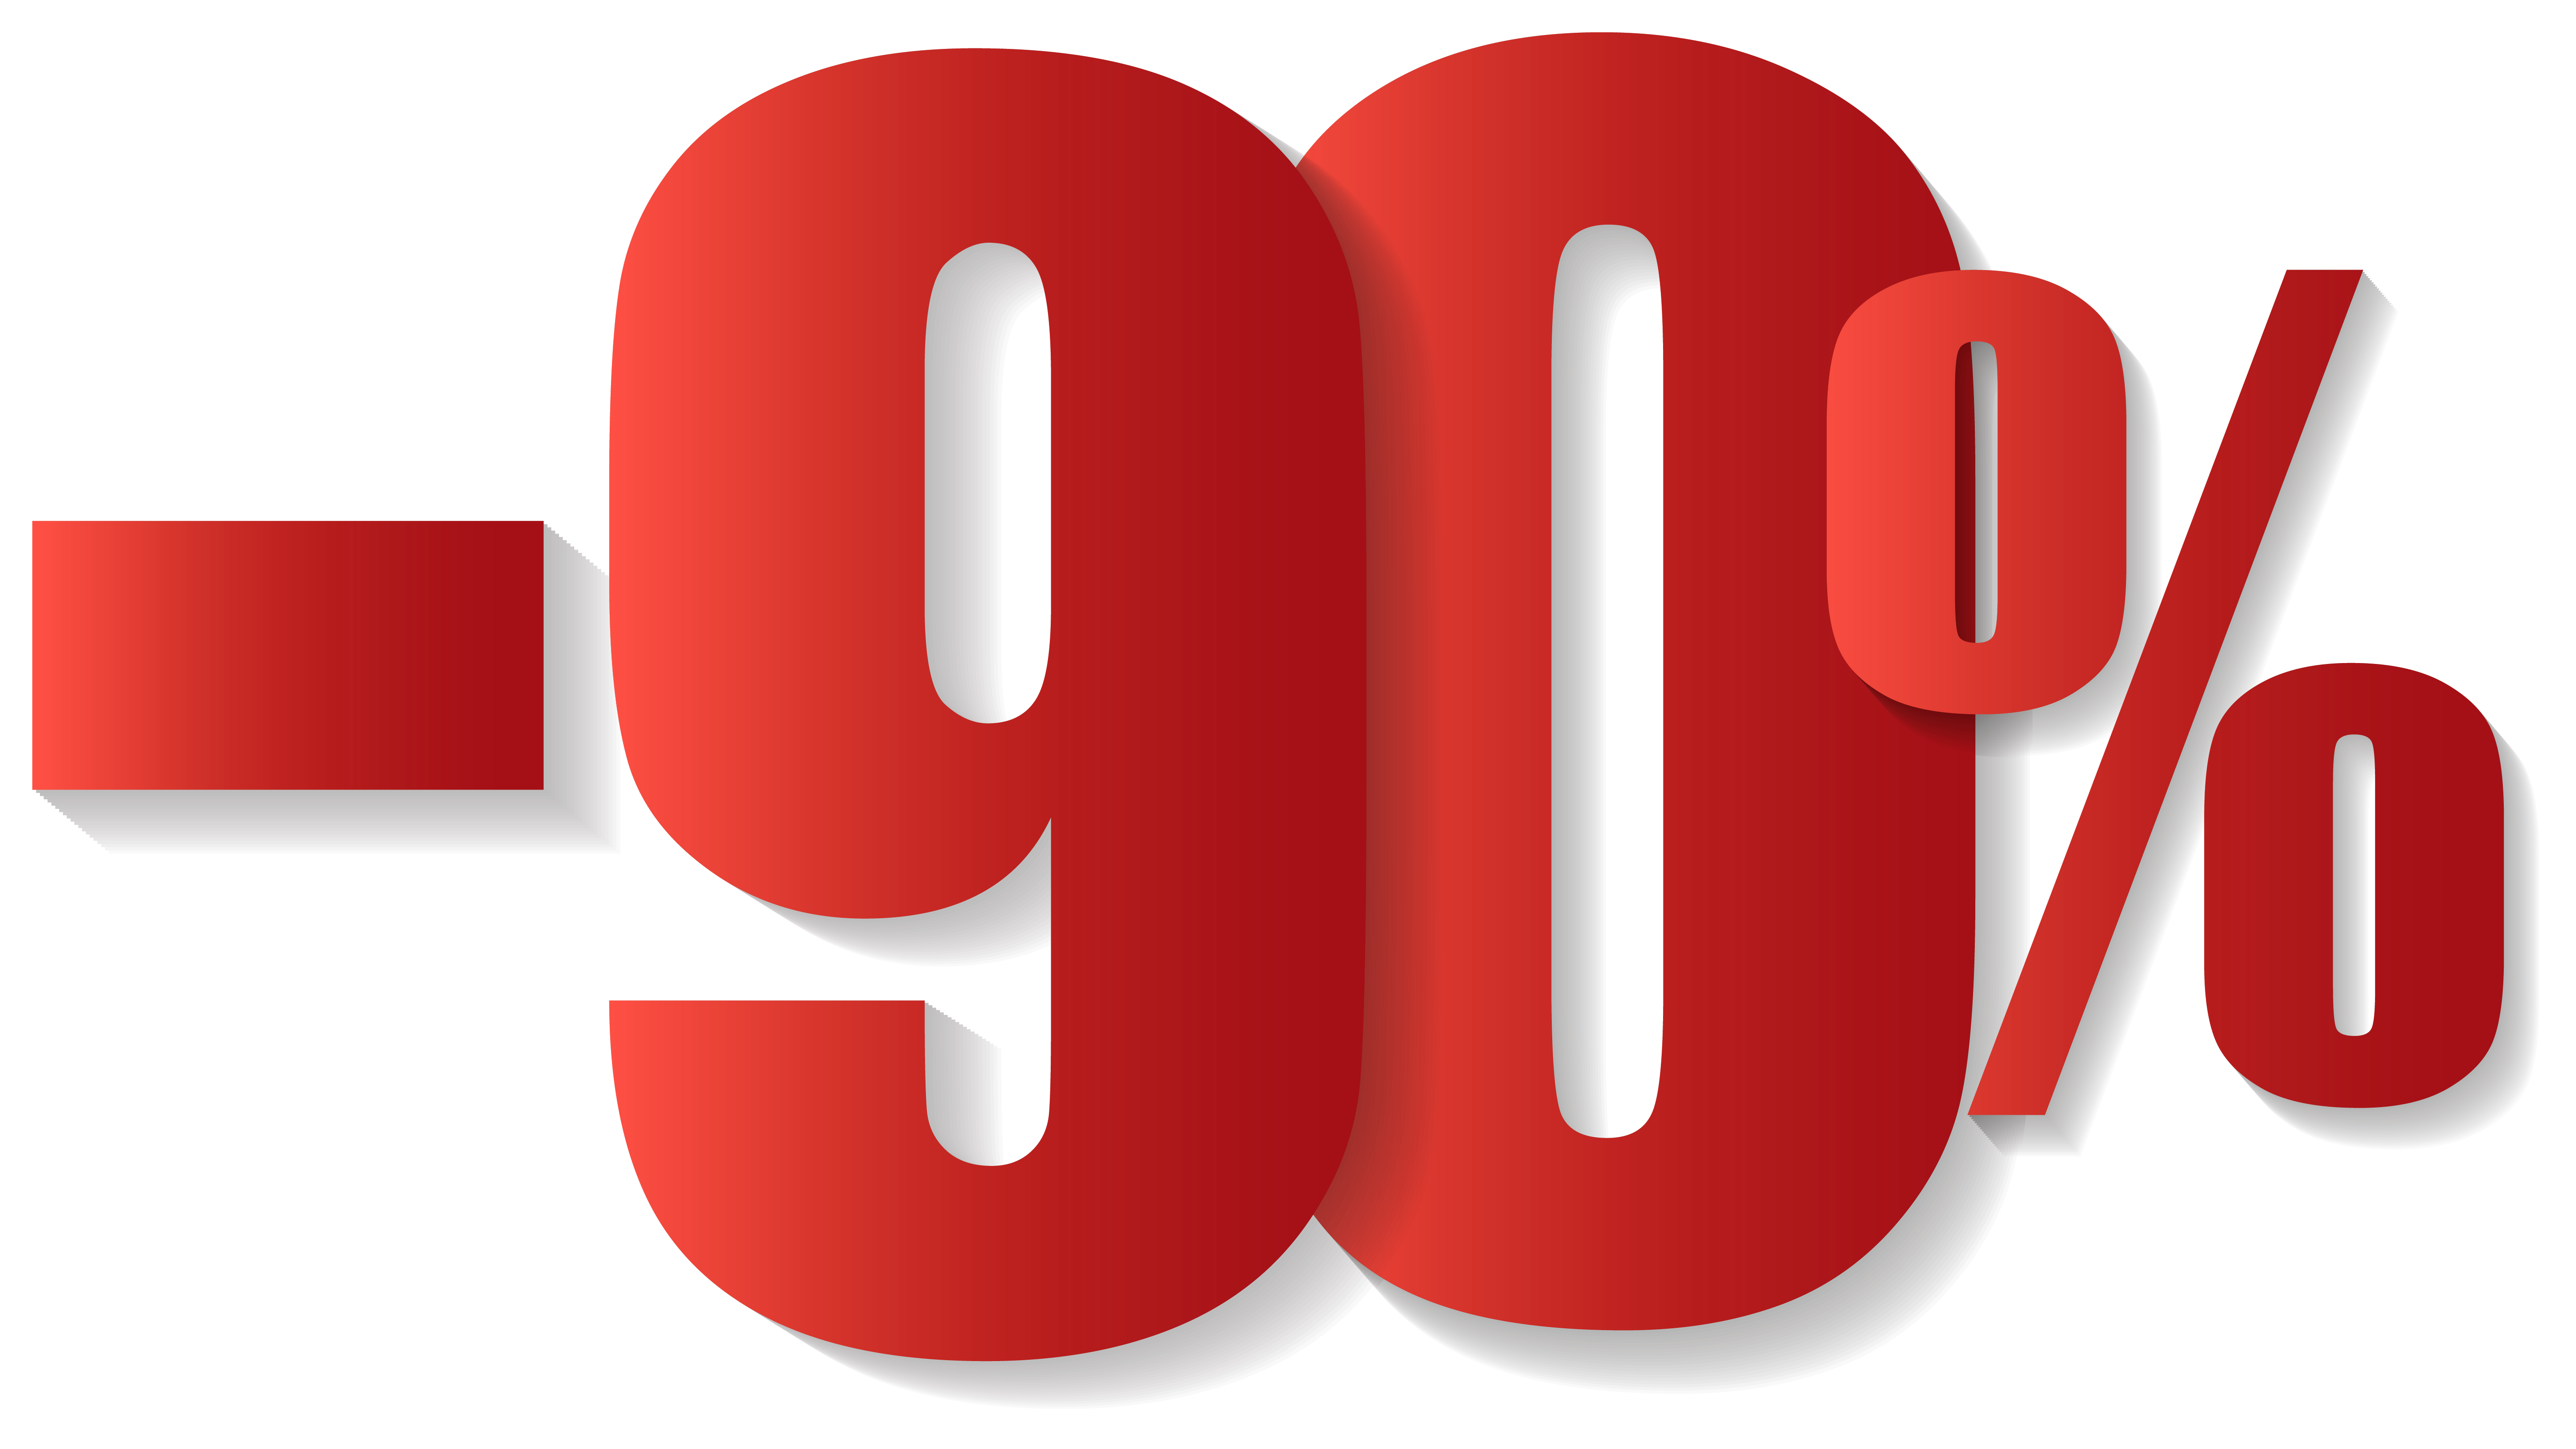 90% Off Sale PNG Clipart Image.